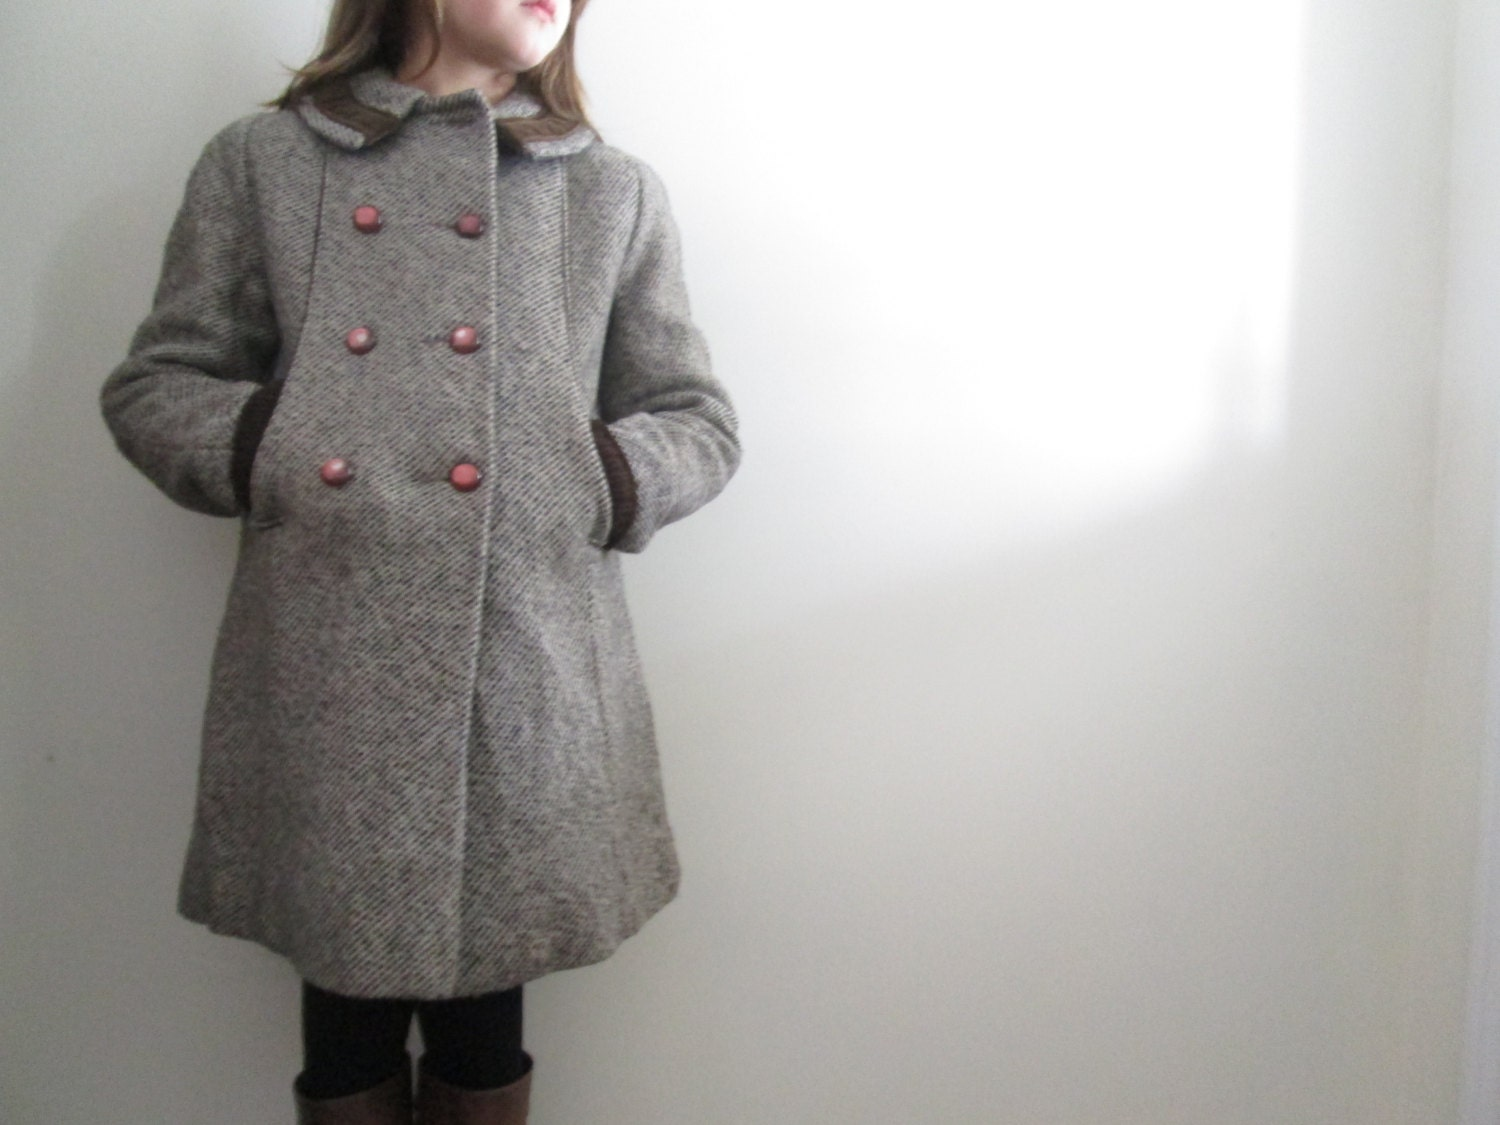 Free shipping on little girls' jackets, outerwear & coats at travabjmsh.ga Shop peacoats, denim jackets, vests & raincoats. Free shipping & returns.